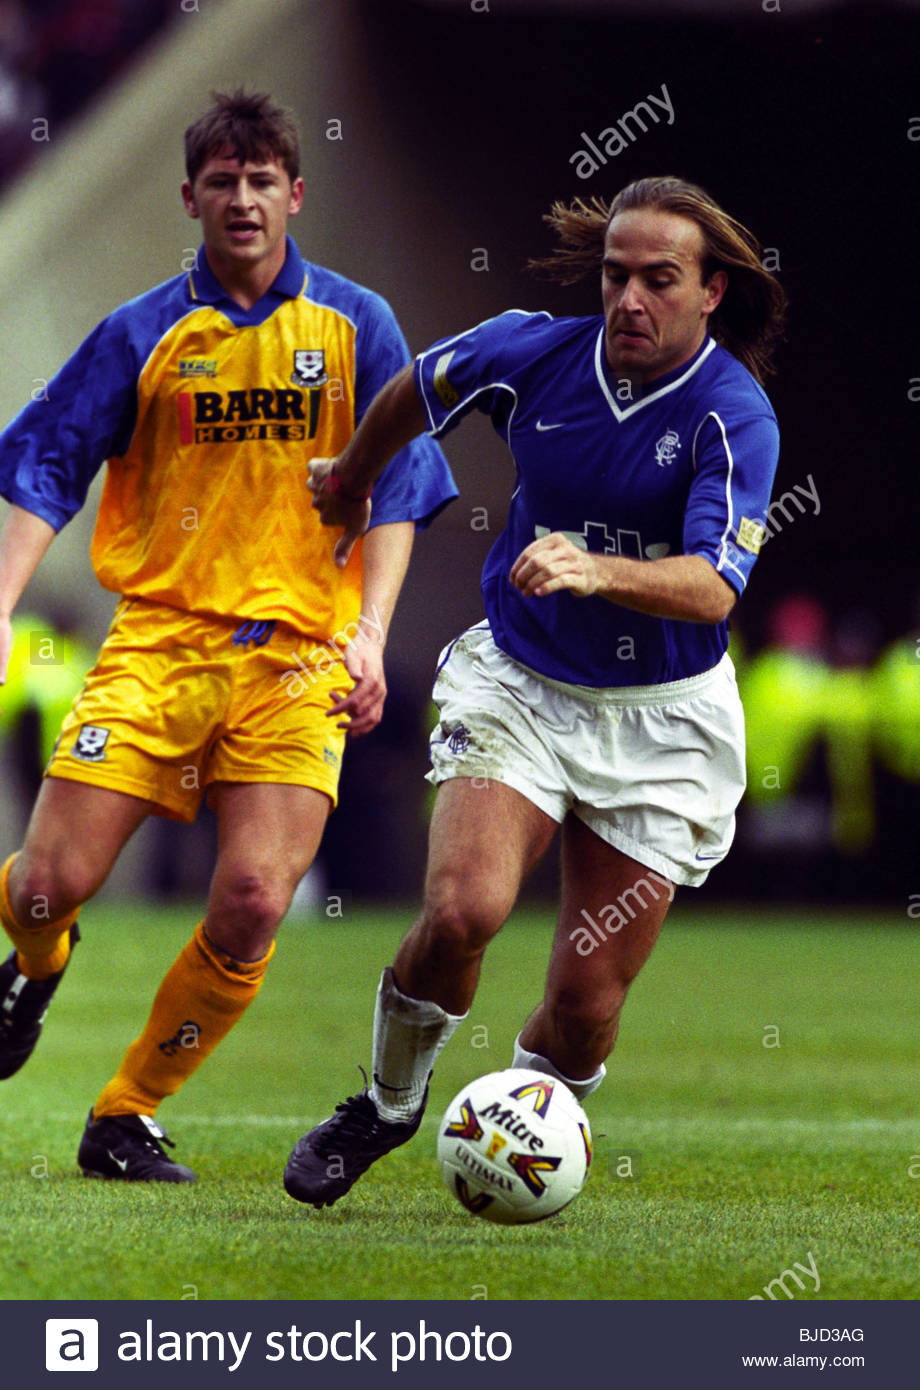 08/04/00 TENNENT'S SCOTTISH CUP SEMI-FINAL AYR UTD v RANGERS (0-7) HAMPDEN - GLASGOW Sebastian Rozental in action - Stock Image